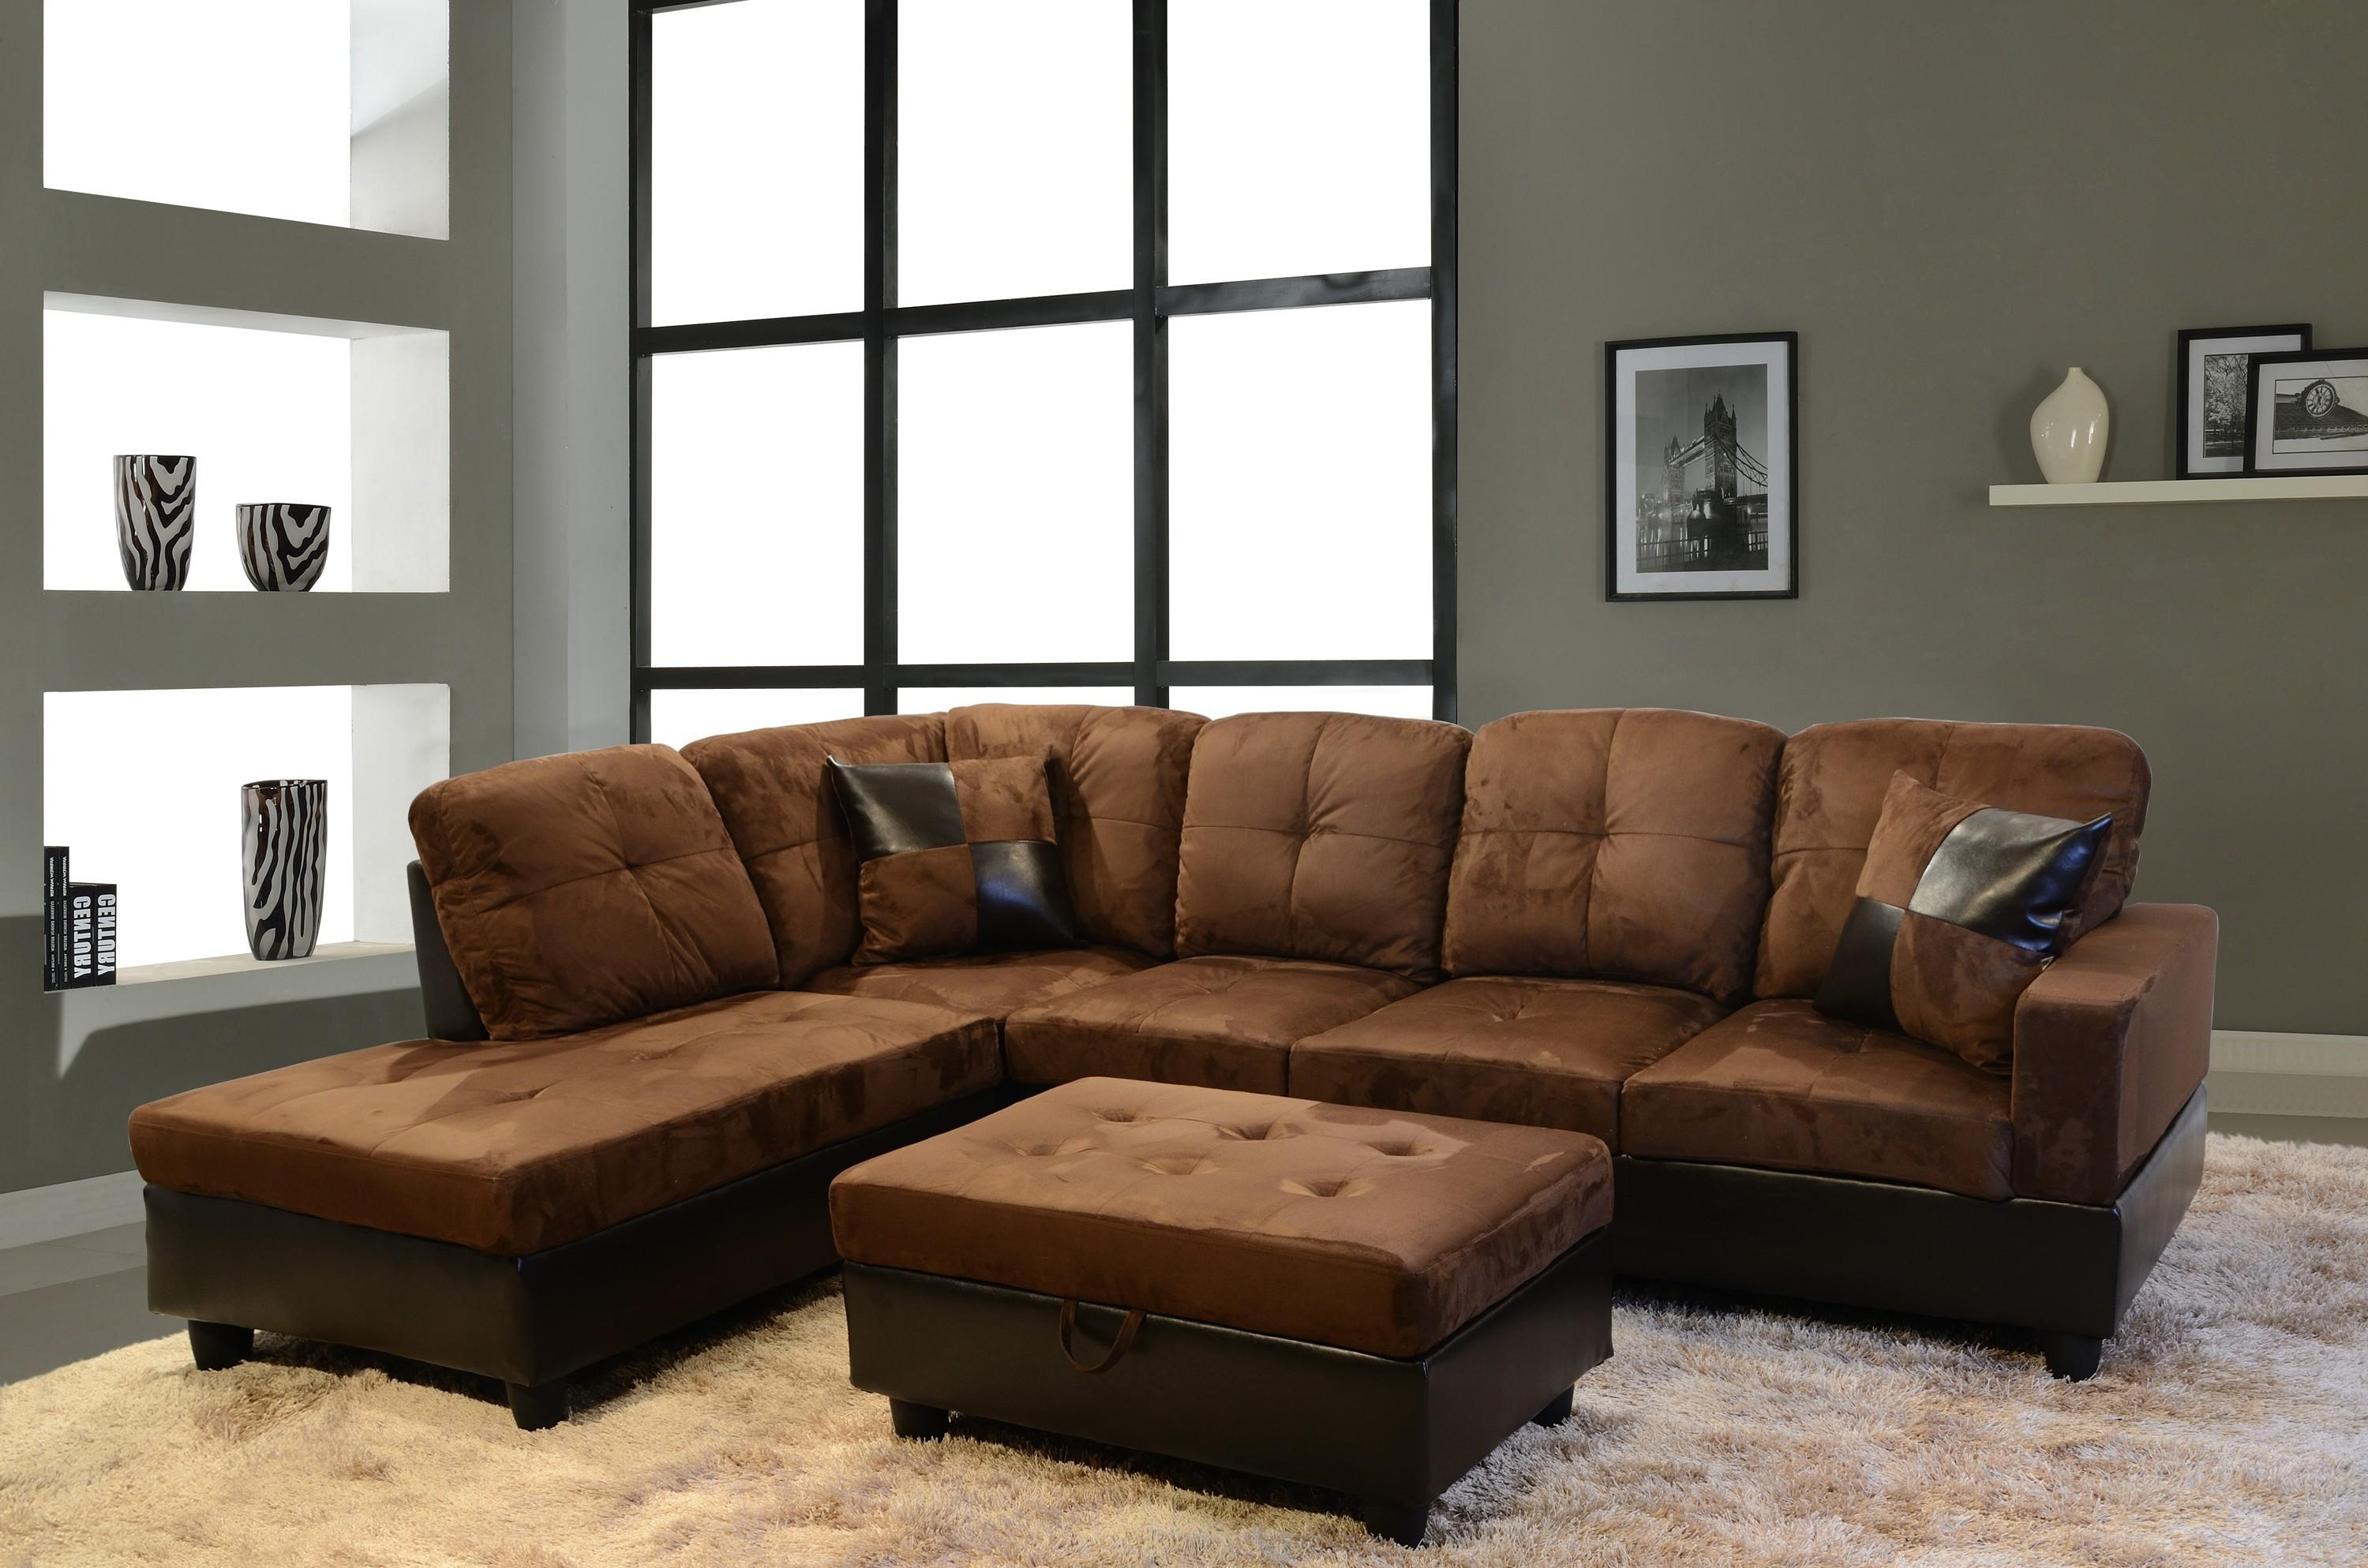 Furniture: Fantastic Sectional Couches With Recliners For Your With Regard To Leather And Suede Sectional (View 12 of 20)